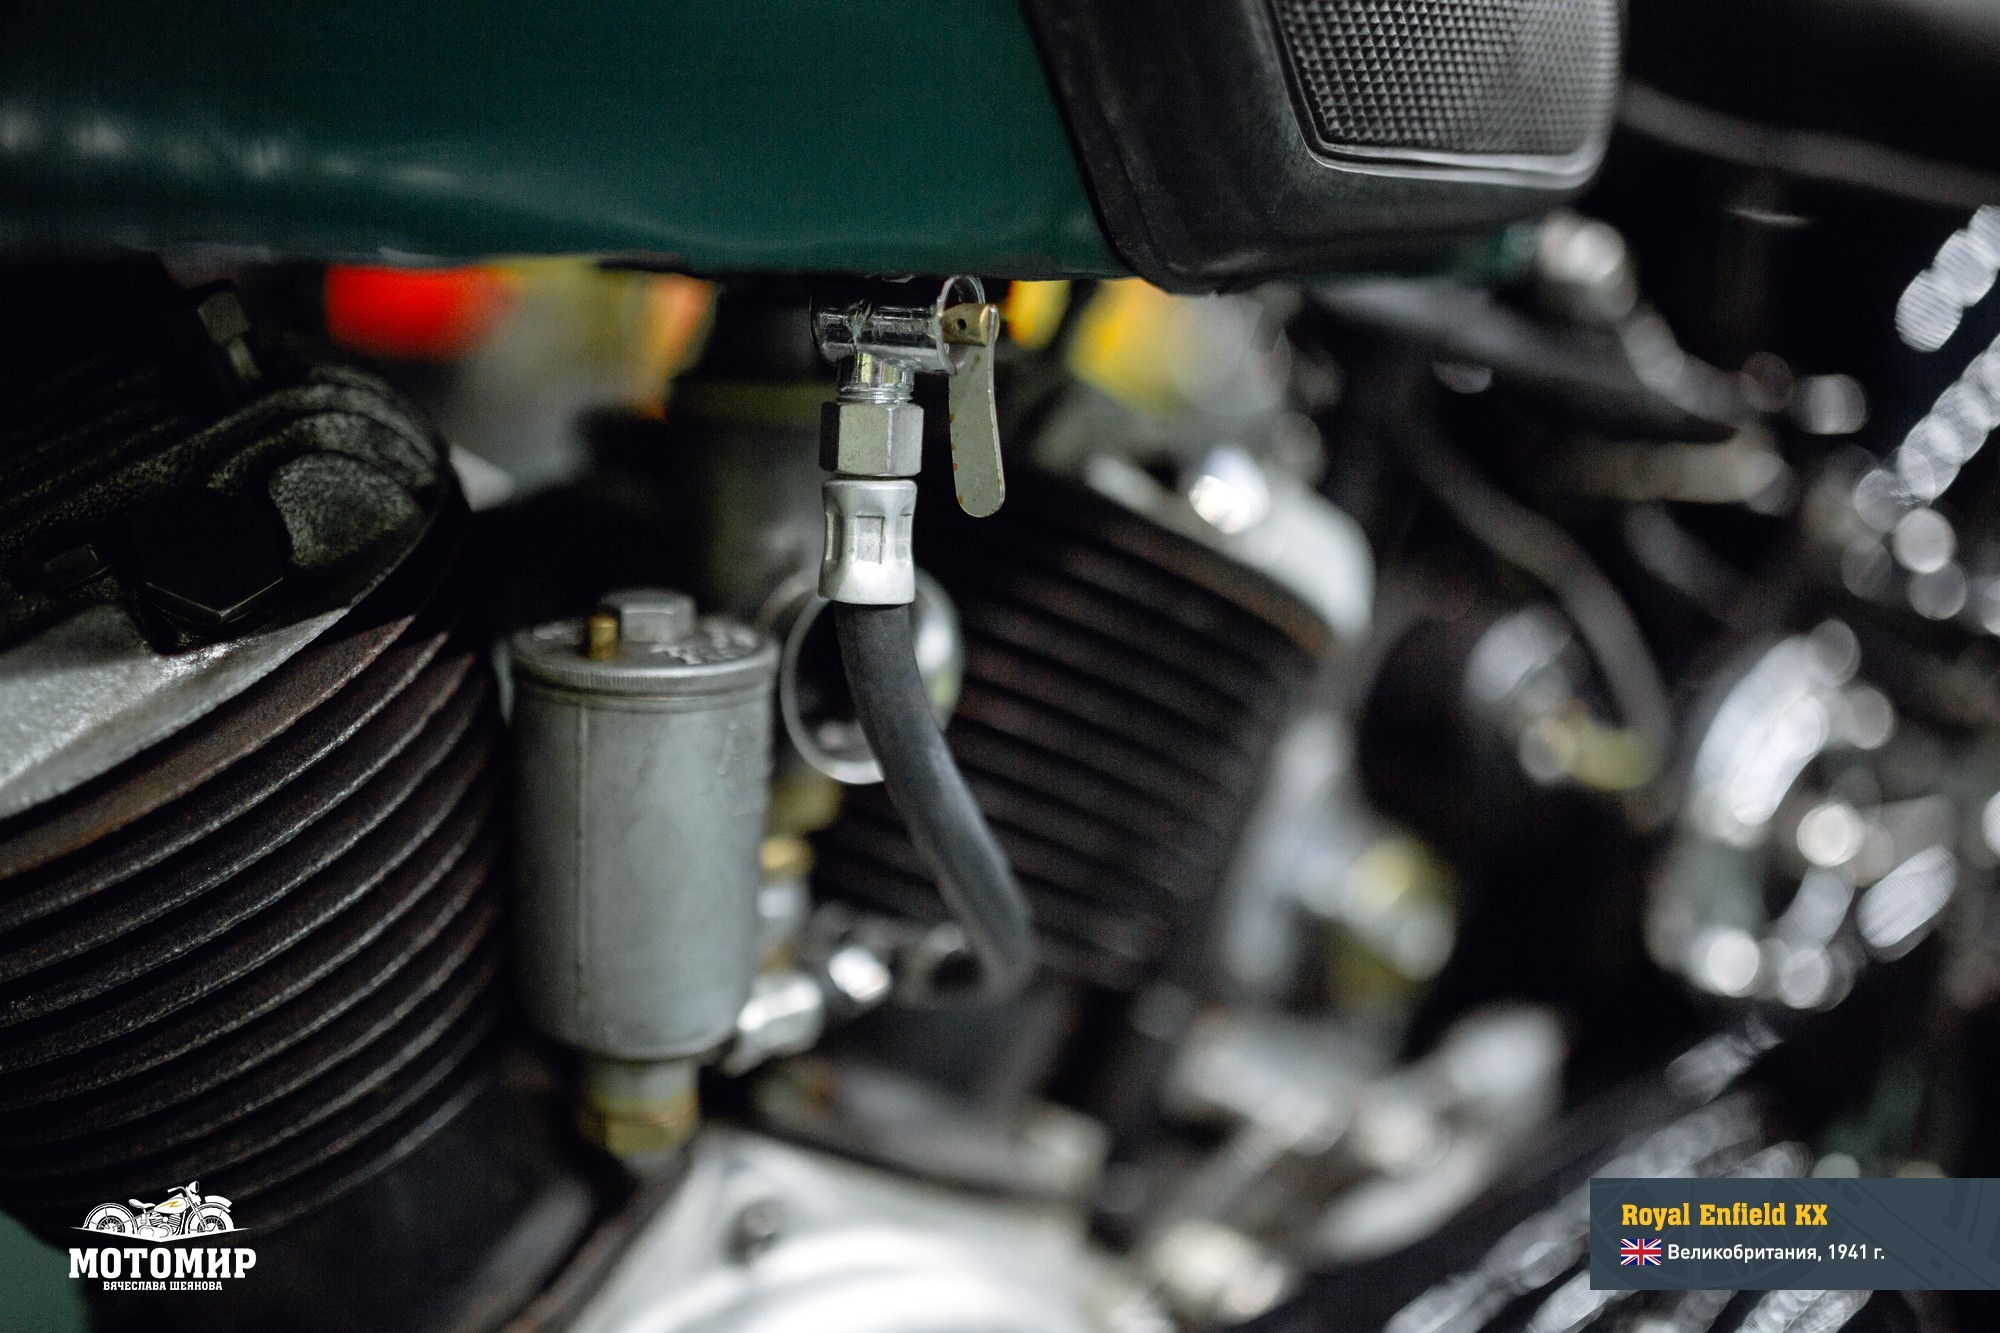 royal-enfield-kx-201601-web-14